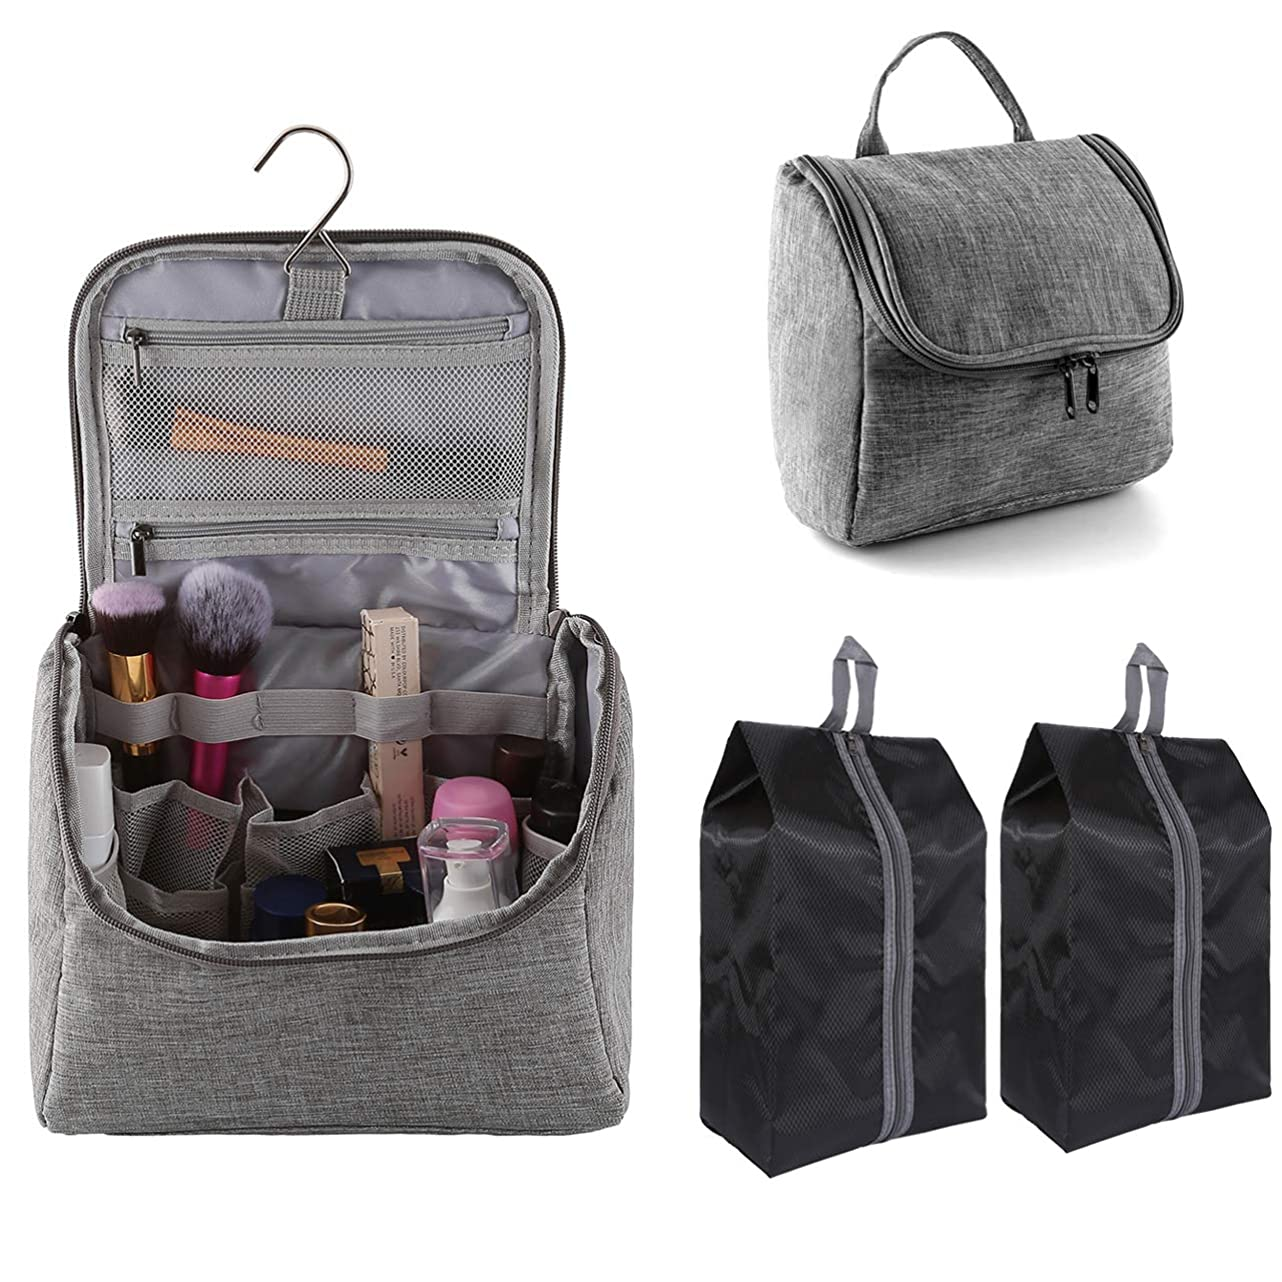 Hanging Toiletry Bag with 2 Pcs Shoe Bags, CozyCabin Waterproof Travel Cosmetic Bag, Organizer for Travel Accessories, Shower Bag for Men & Women with Mesh Pocket & Metal Hook (Grey) run016173740401